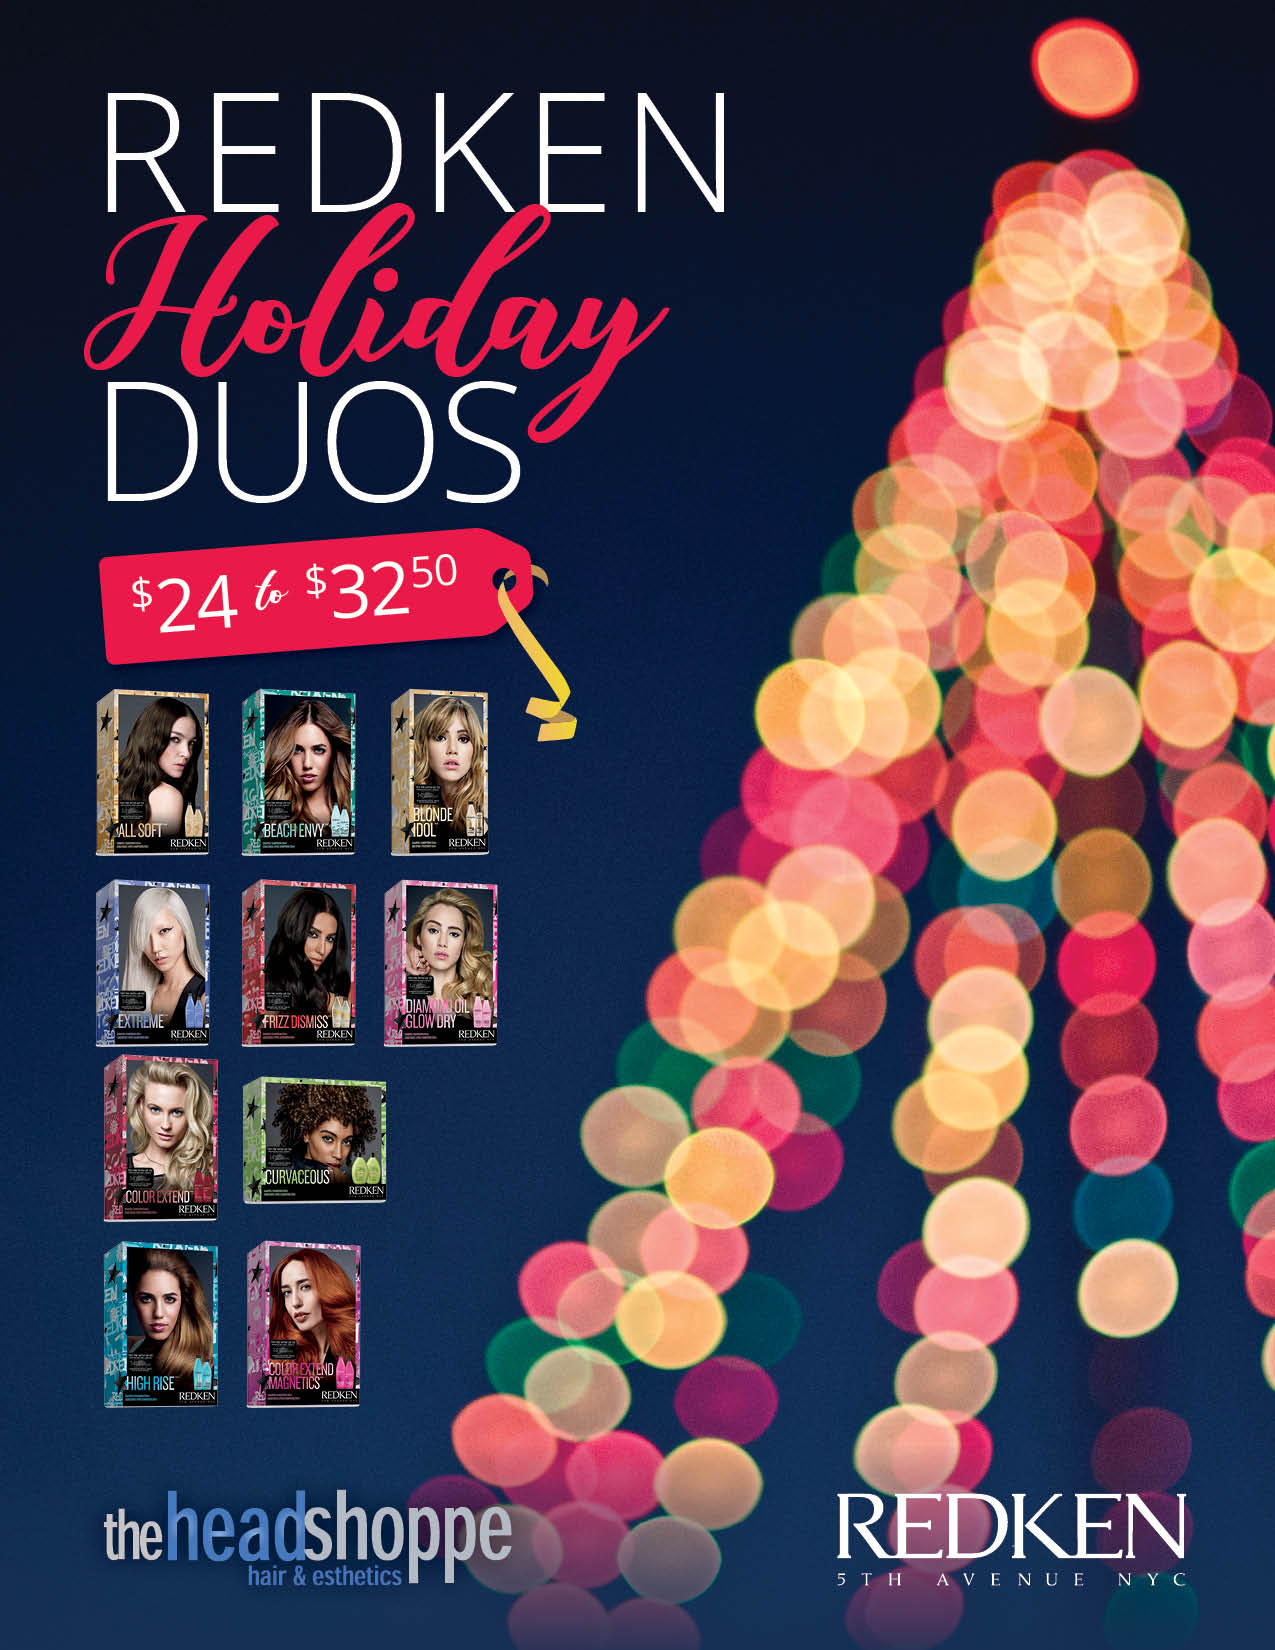 Redken Holiday Duos